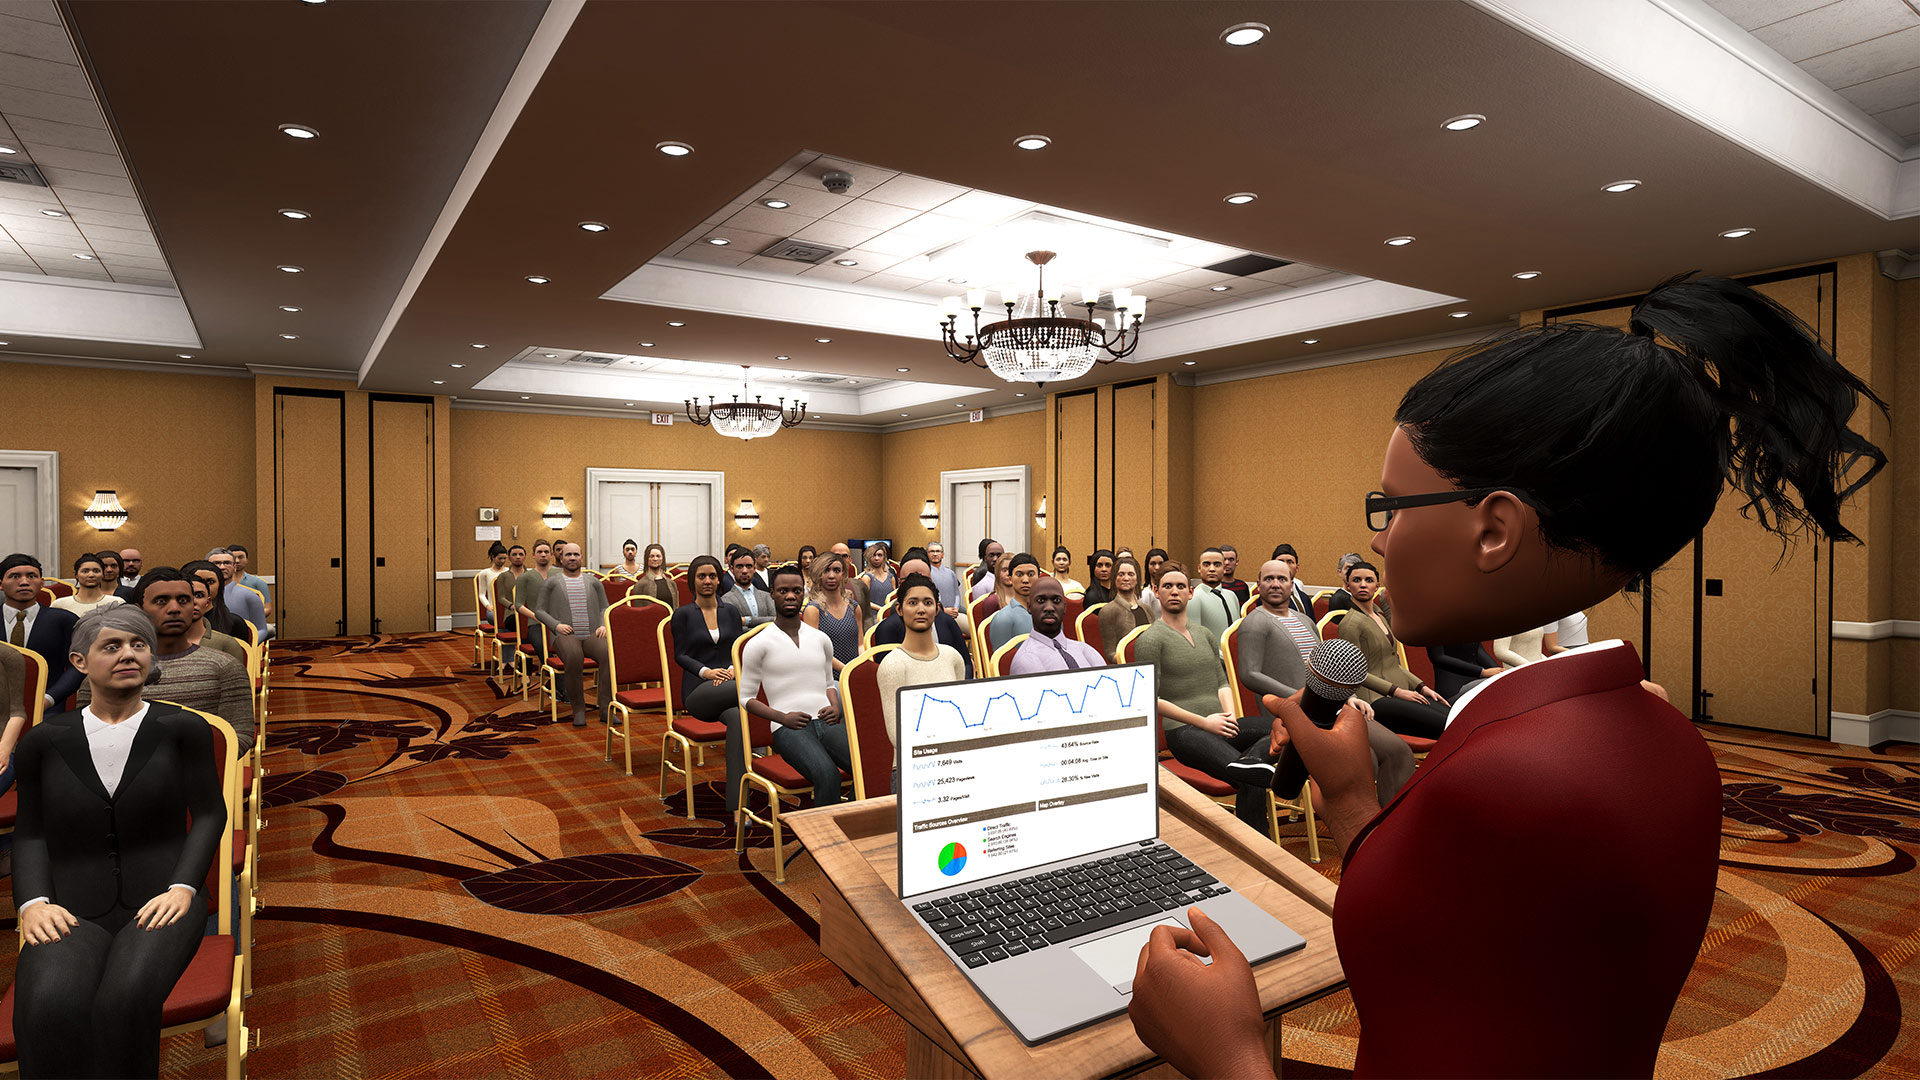 Ovation' is a Powerful VR Public Speaking Sim Designed for Professional  Training